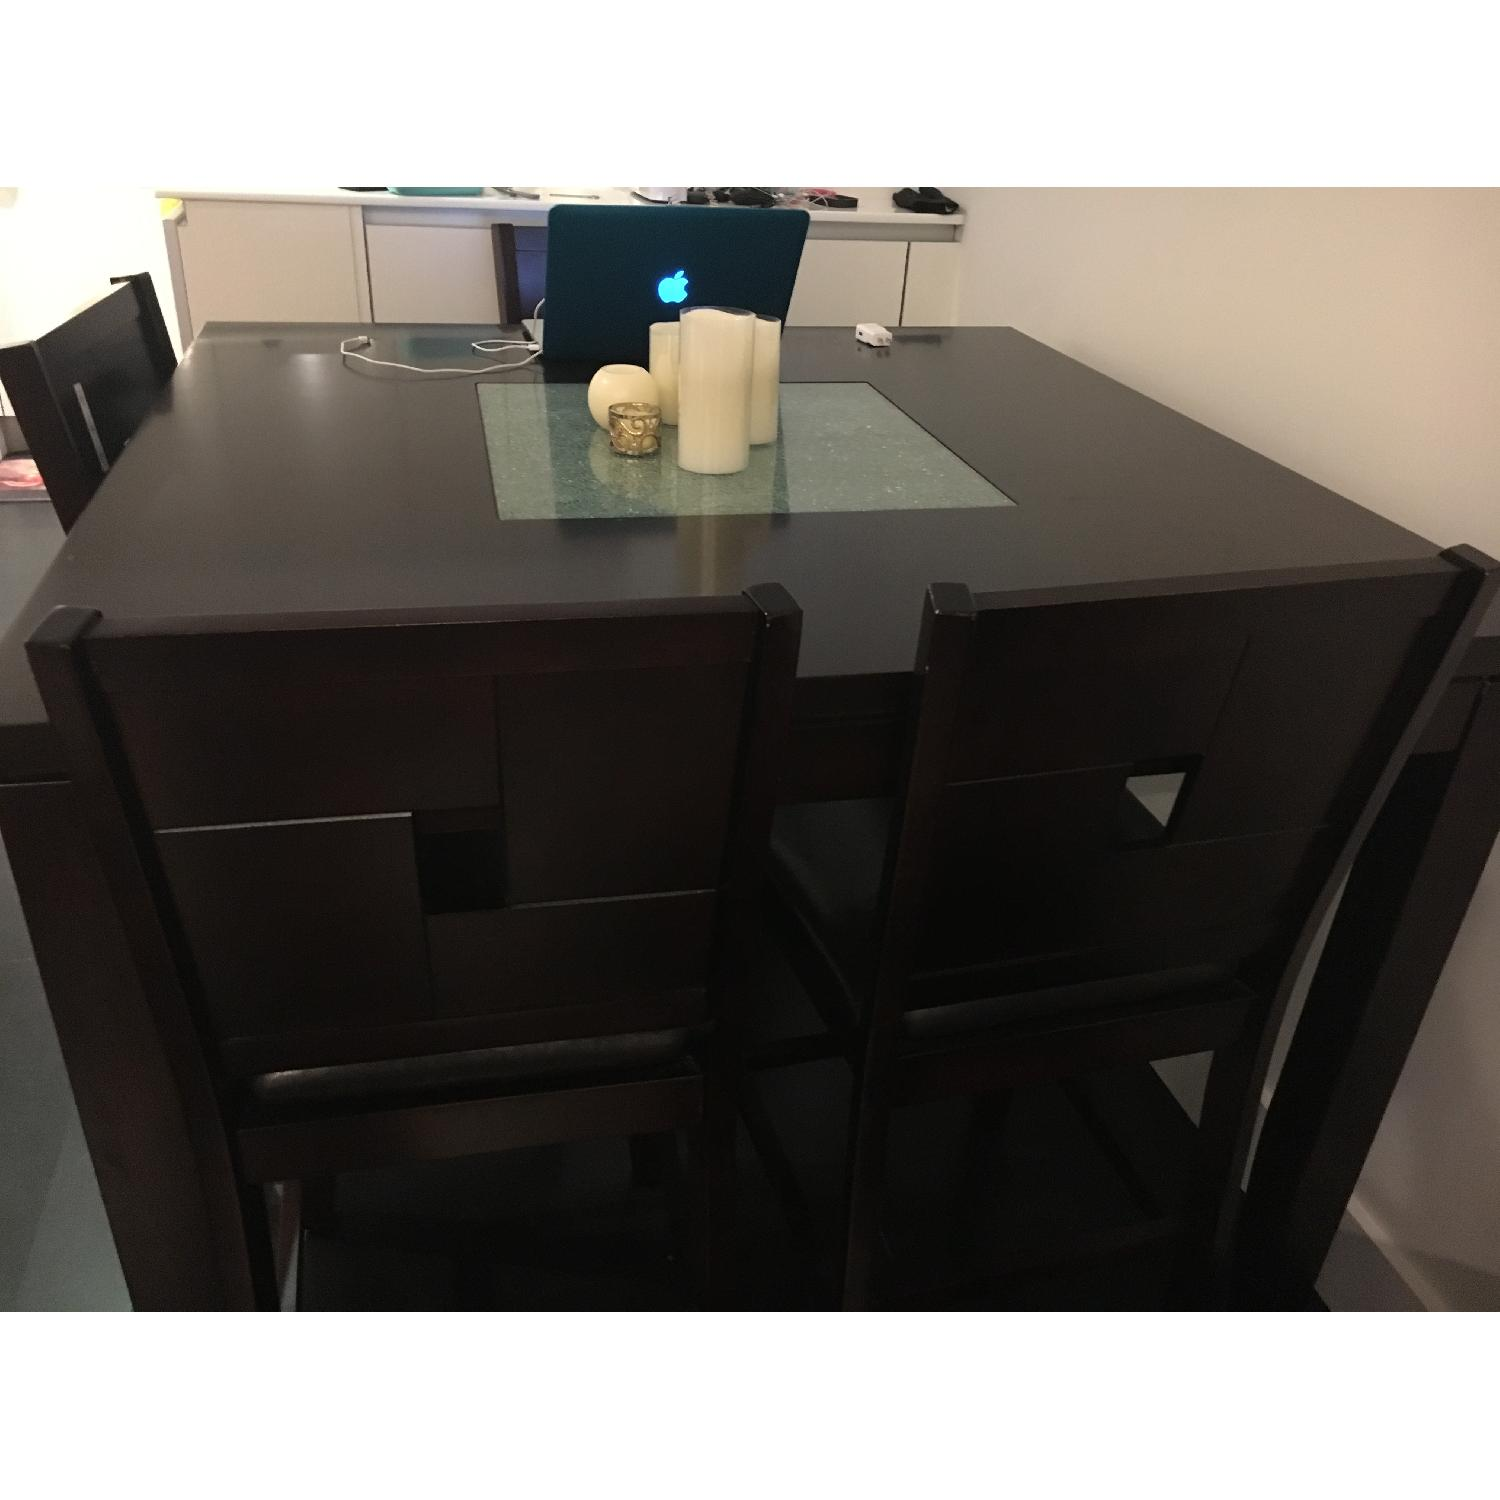 Dining Table w/ 4 Chairs + 1 Bench - image-3